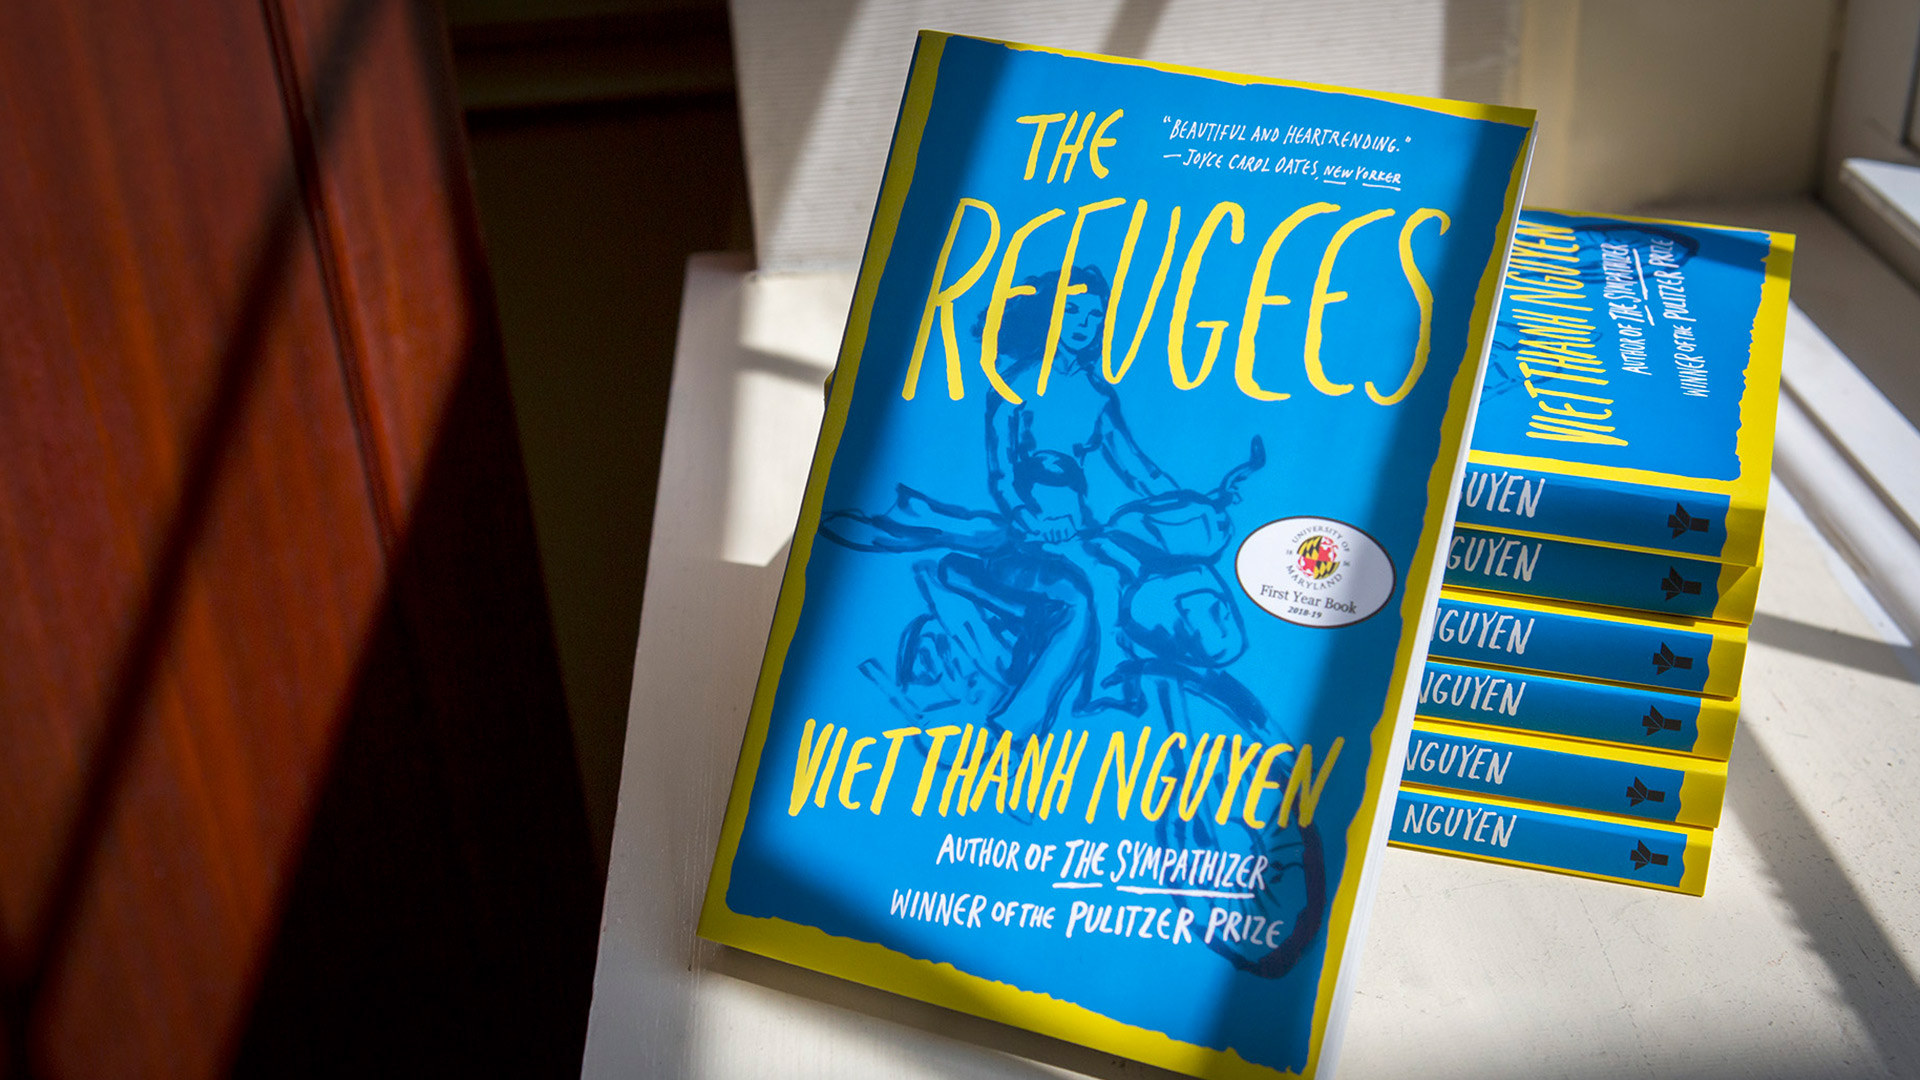 """""""The Refugees"""" Author Viet Thanh Nguyen Addresses Terps Oct. 23"""